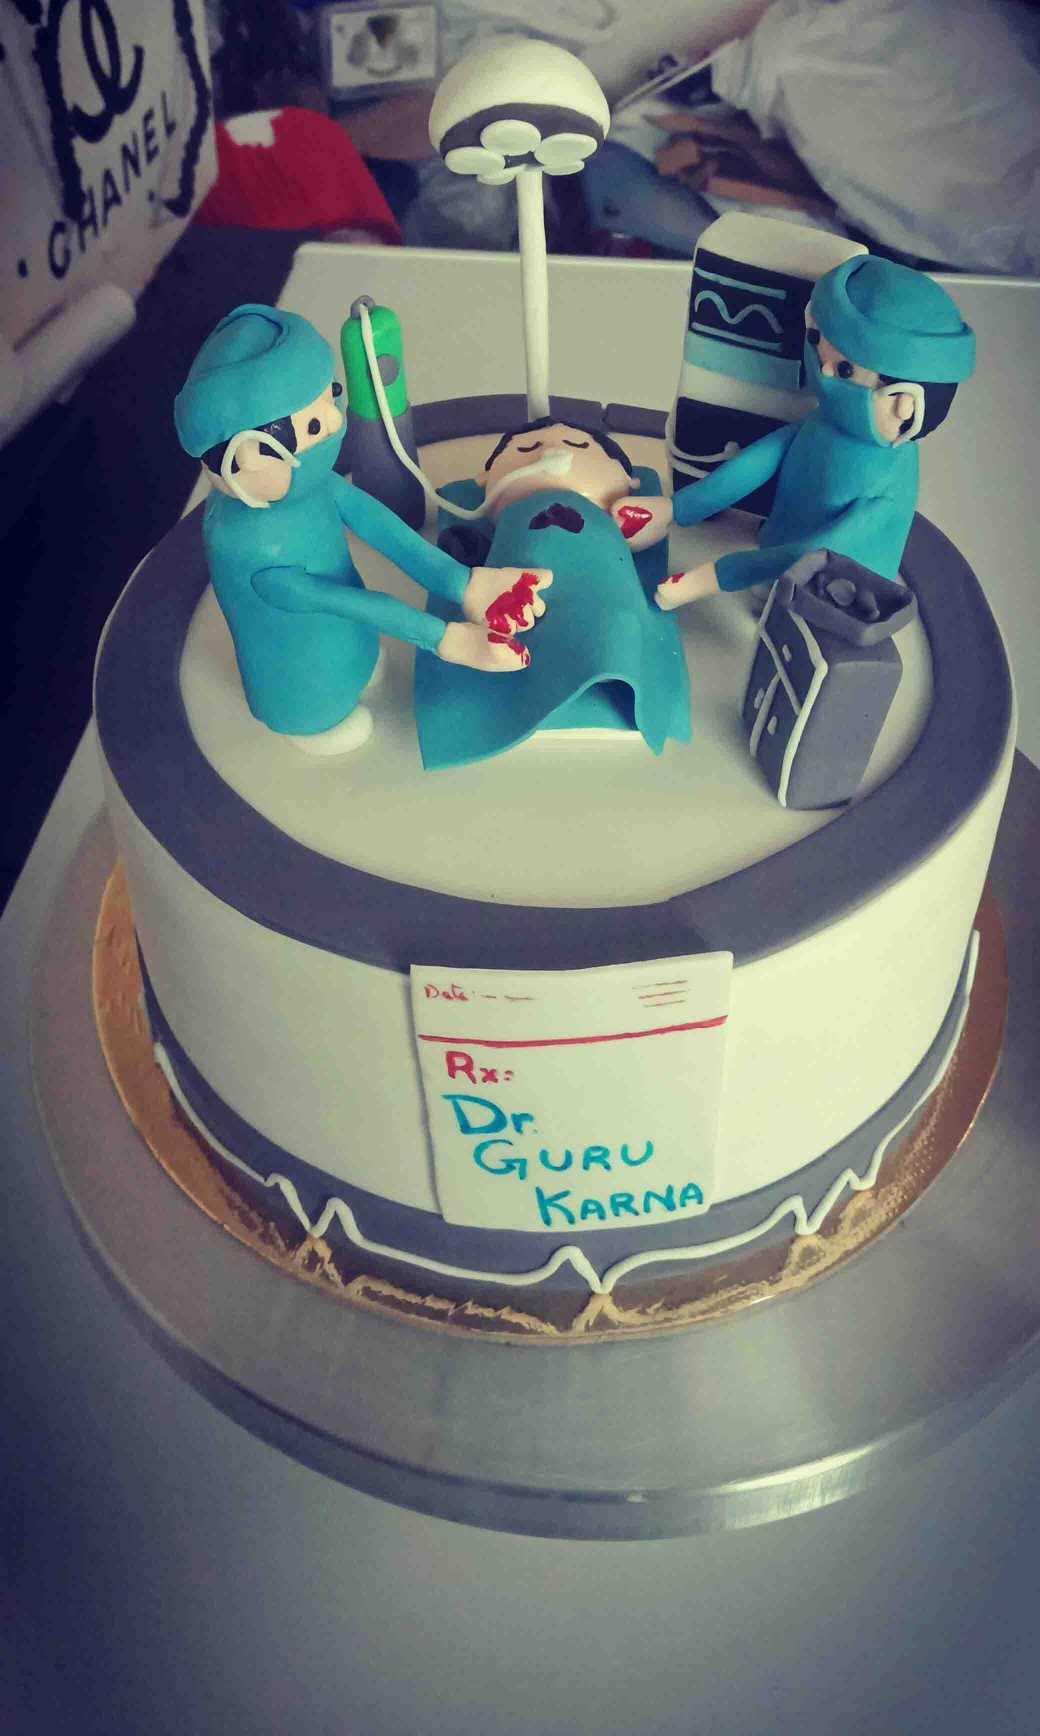 Doctor cake hyderabad, fondant cake hyderabad, Hospital cake hyderabad,kids cake hyderabad,fondant cakes hyderabad,delivery